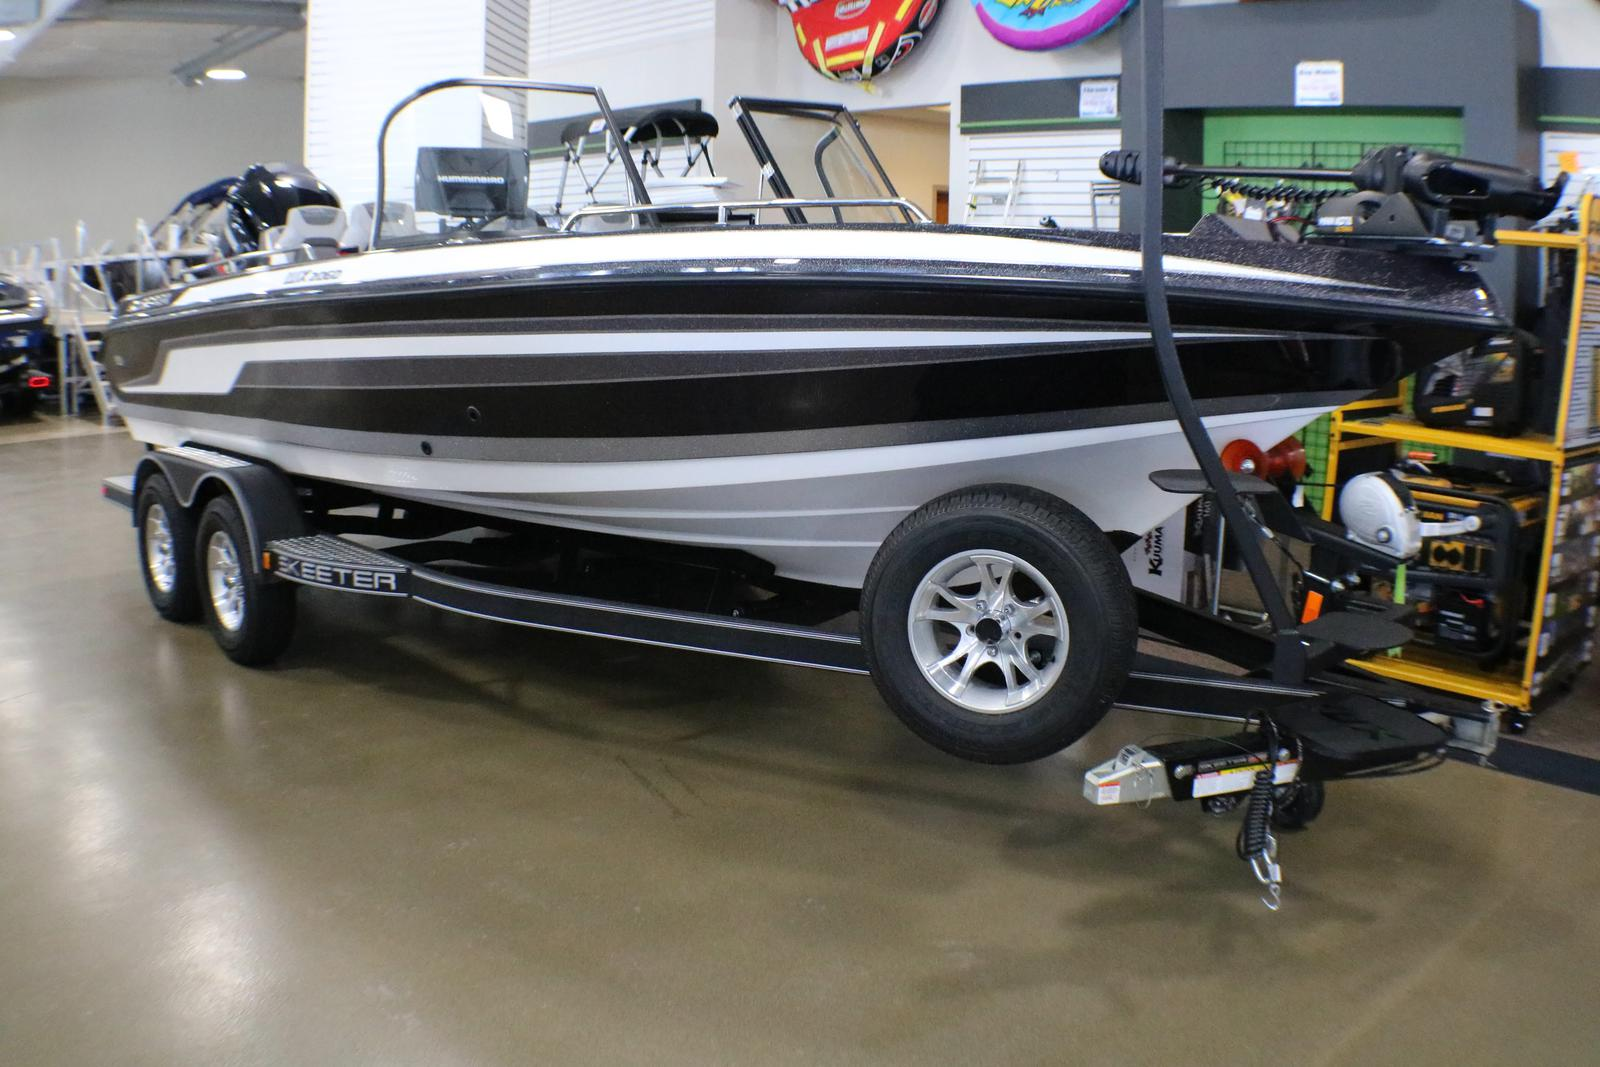 Skeeter Bass Boats For Sale >> 2019 Skeeter Wx2060